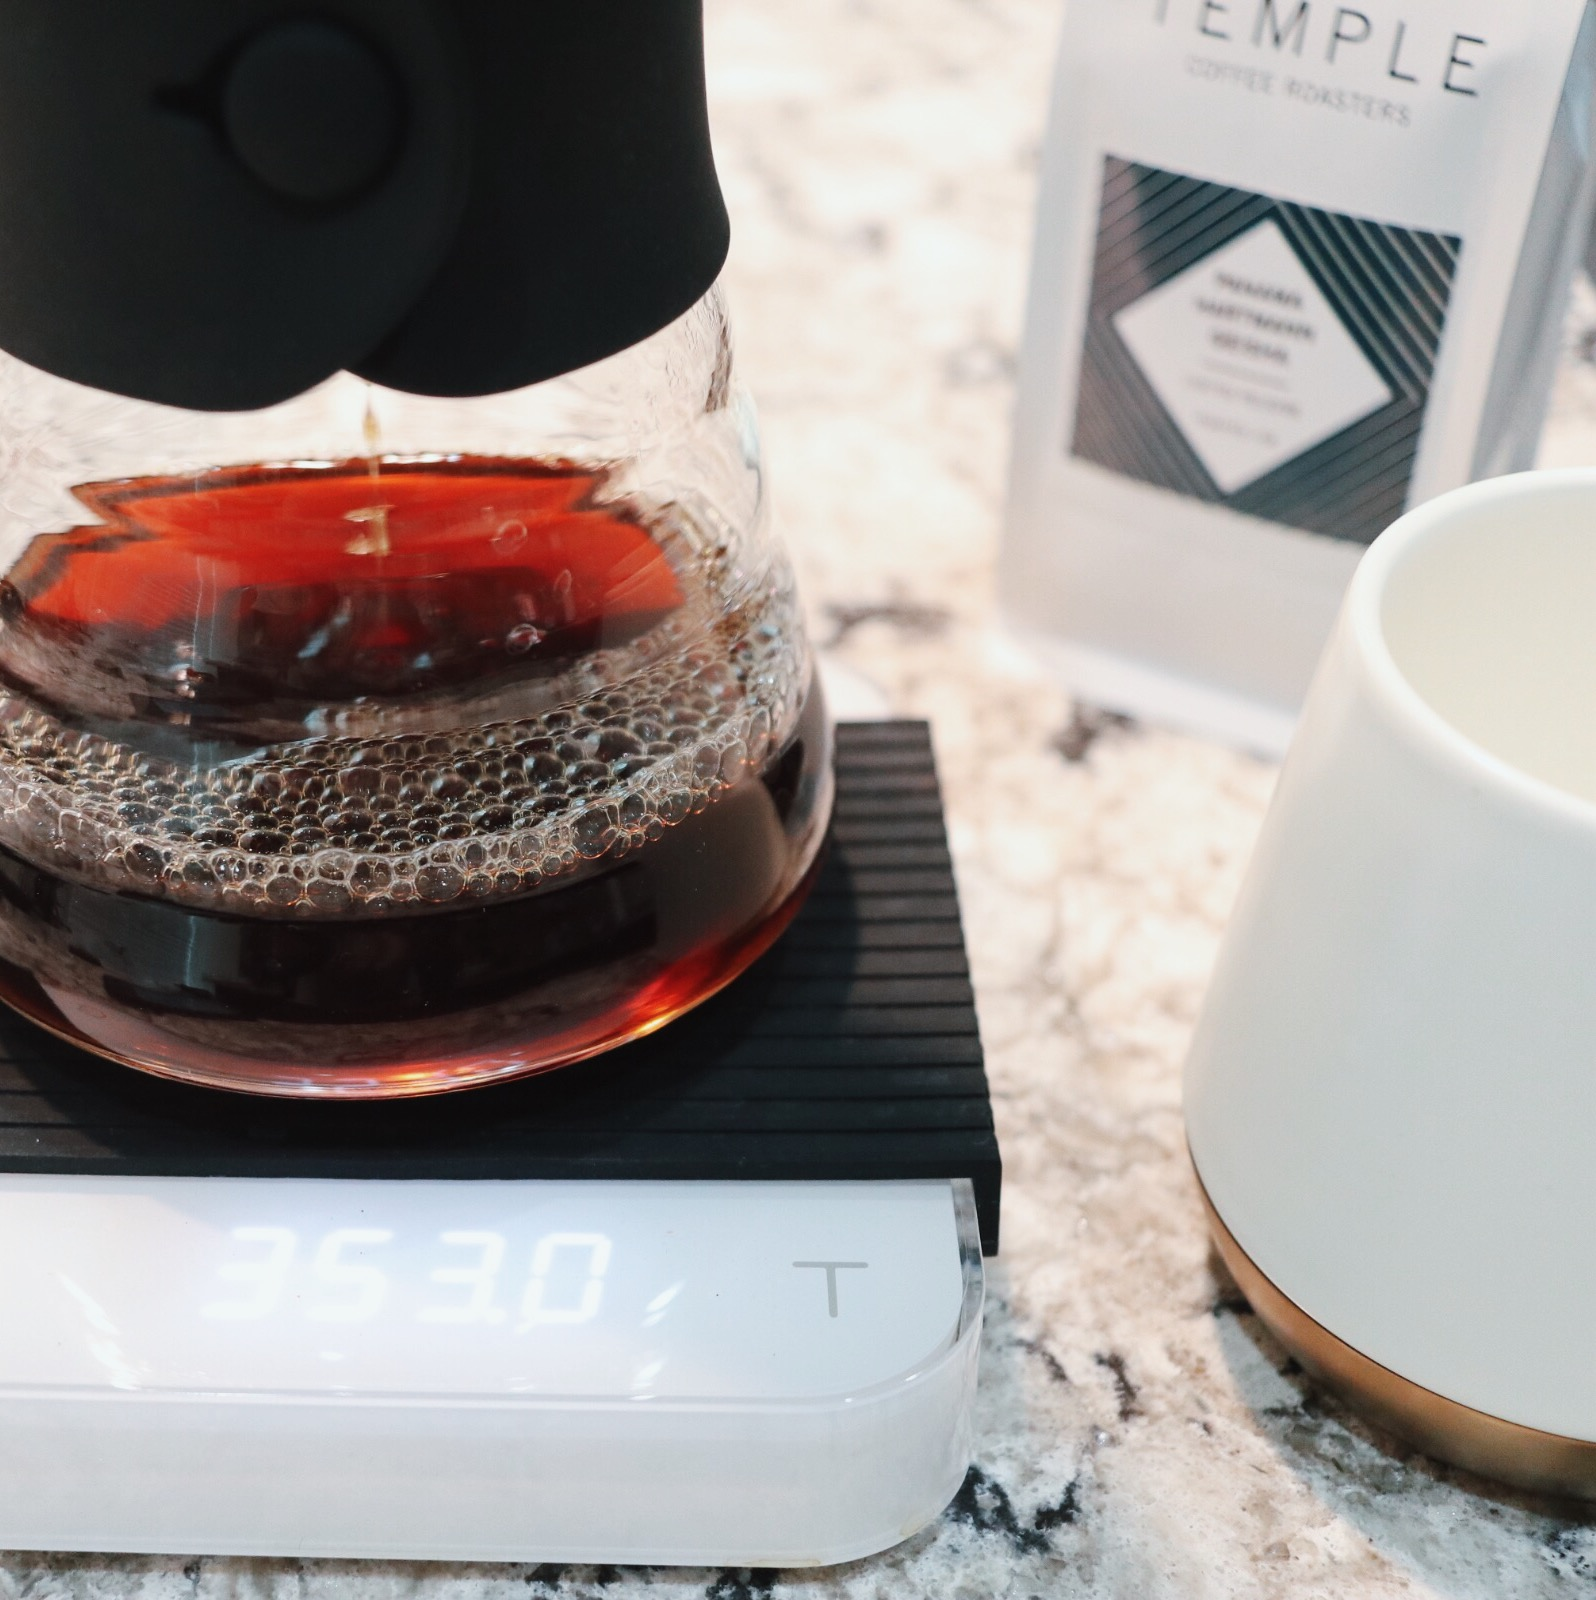 Acaia Pearl Scale pictured with Hario V60 decanter